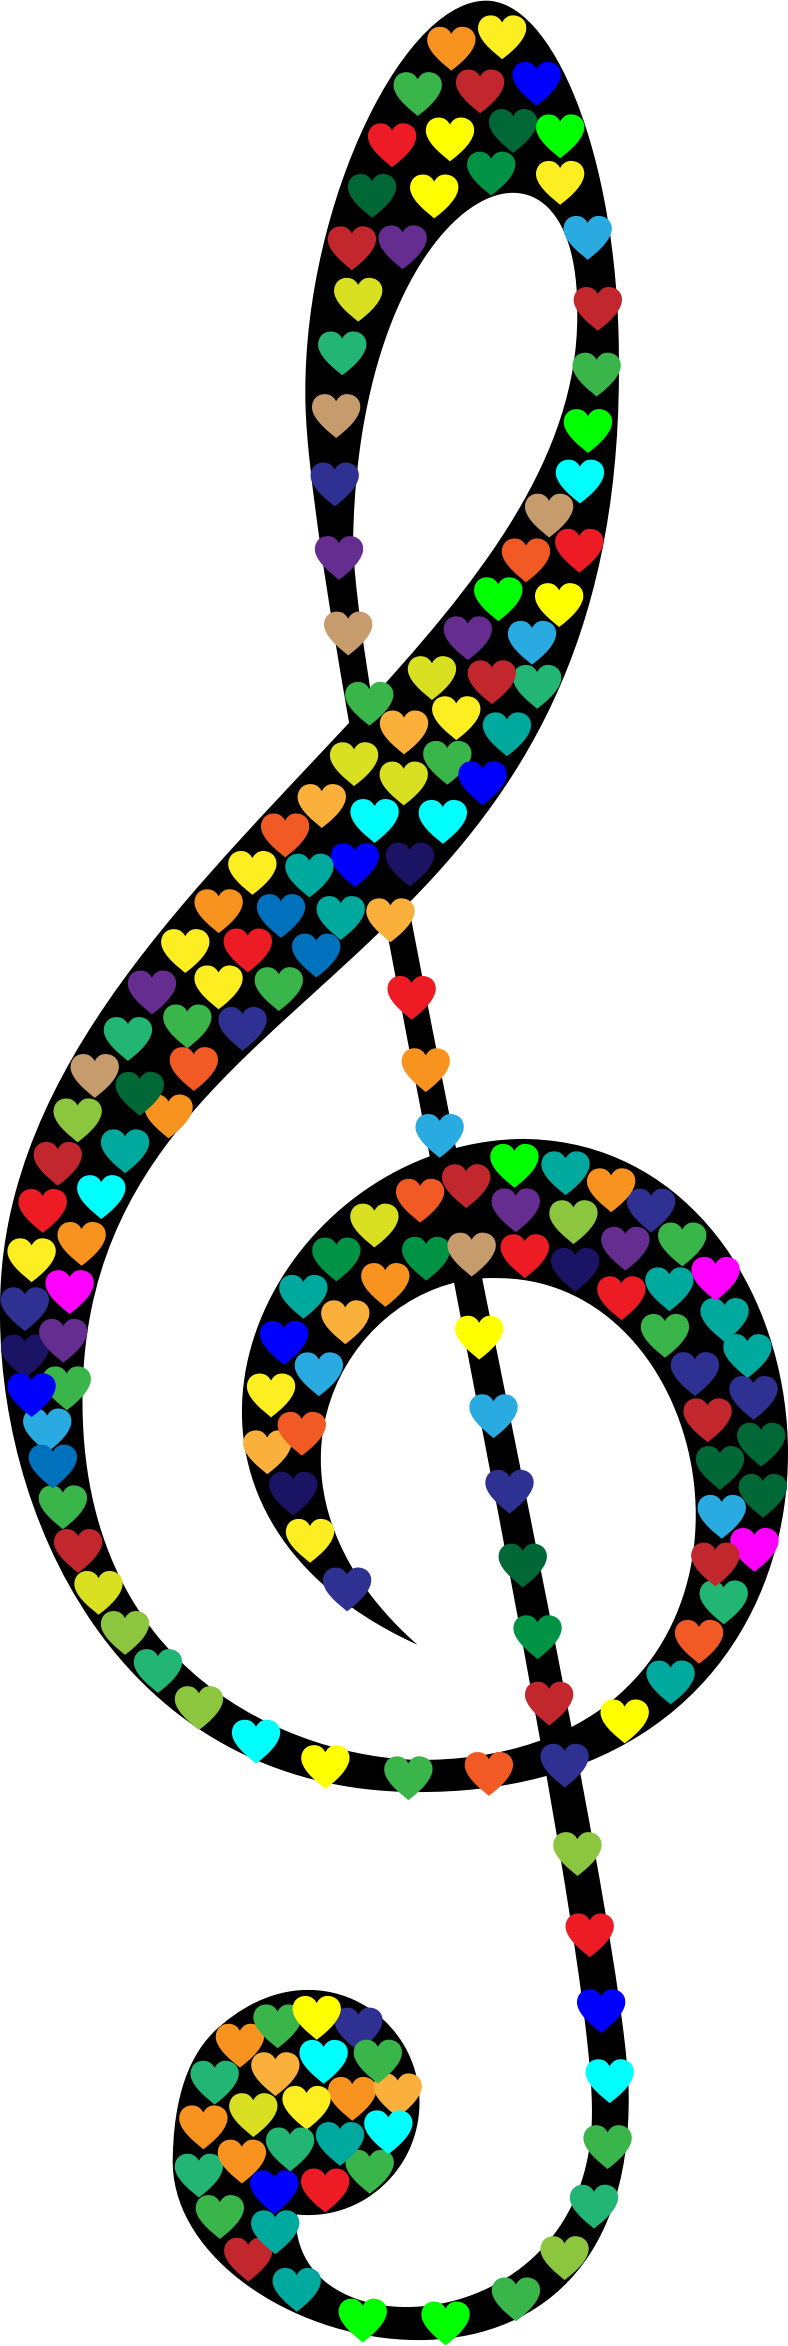 Prismatic Clef Hearts by GDJ